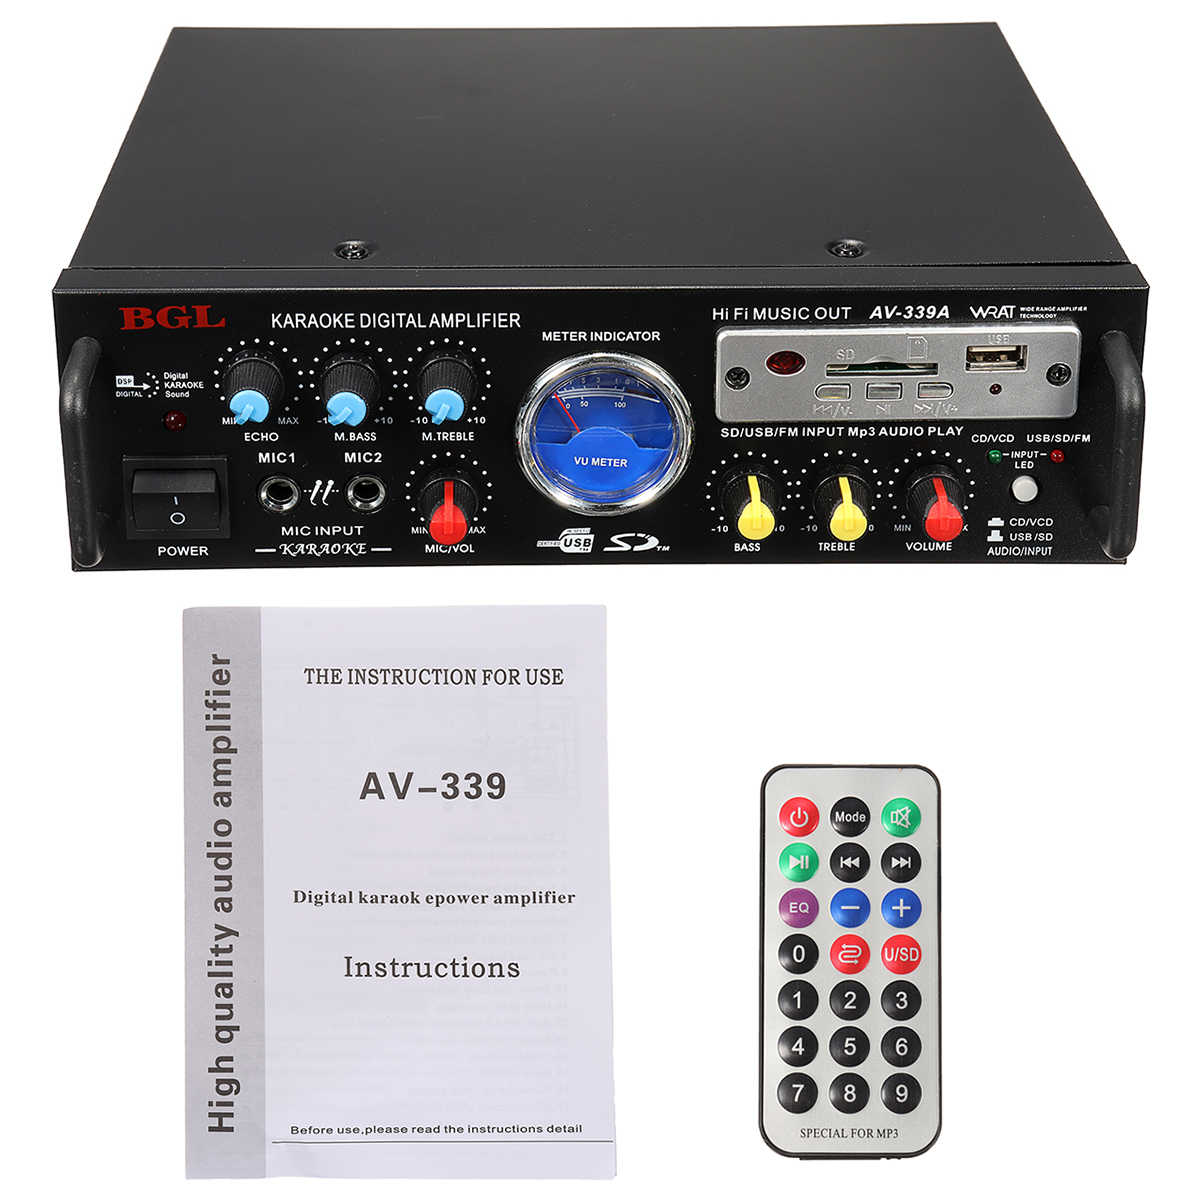 80w 12v 220v 50hz 5 1 channel equalizer stereo power amplifier support sd card tf [ 1200 x 1200 Pixel ]